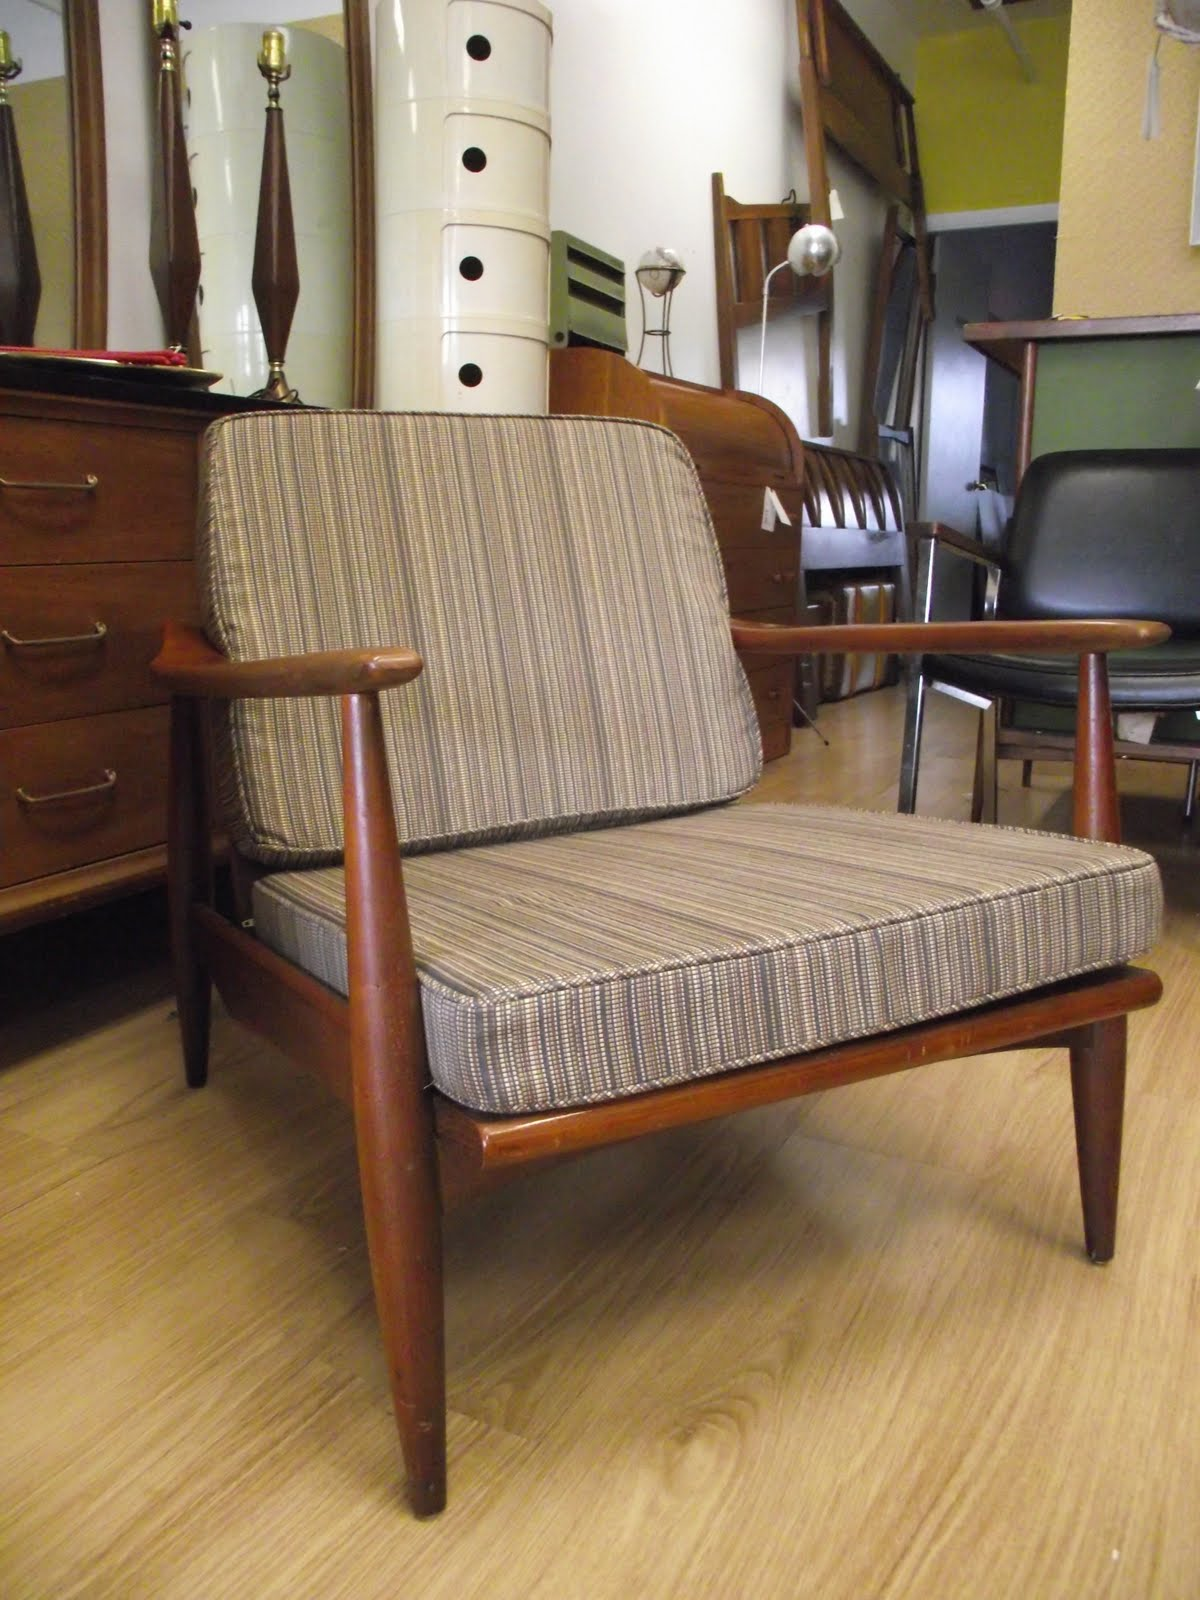 Surroundings Co.: 'New Stripes' MidCentury Modern Danish Lounge Chair